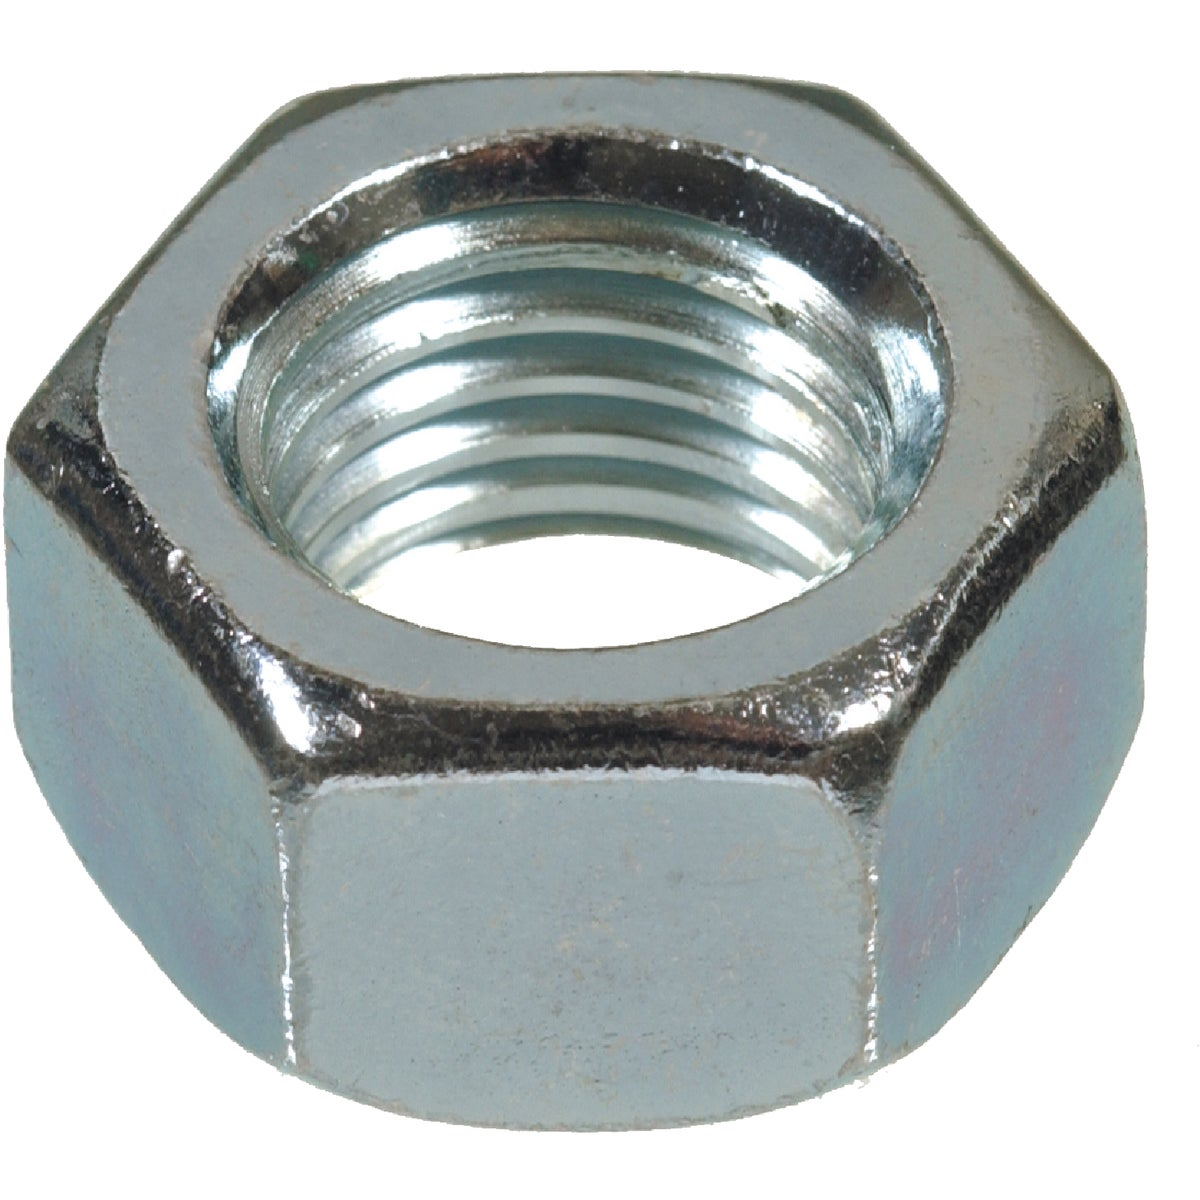 50PC 1/2-13 CRS HEX NUT - 160508 by Hillman Fastener